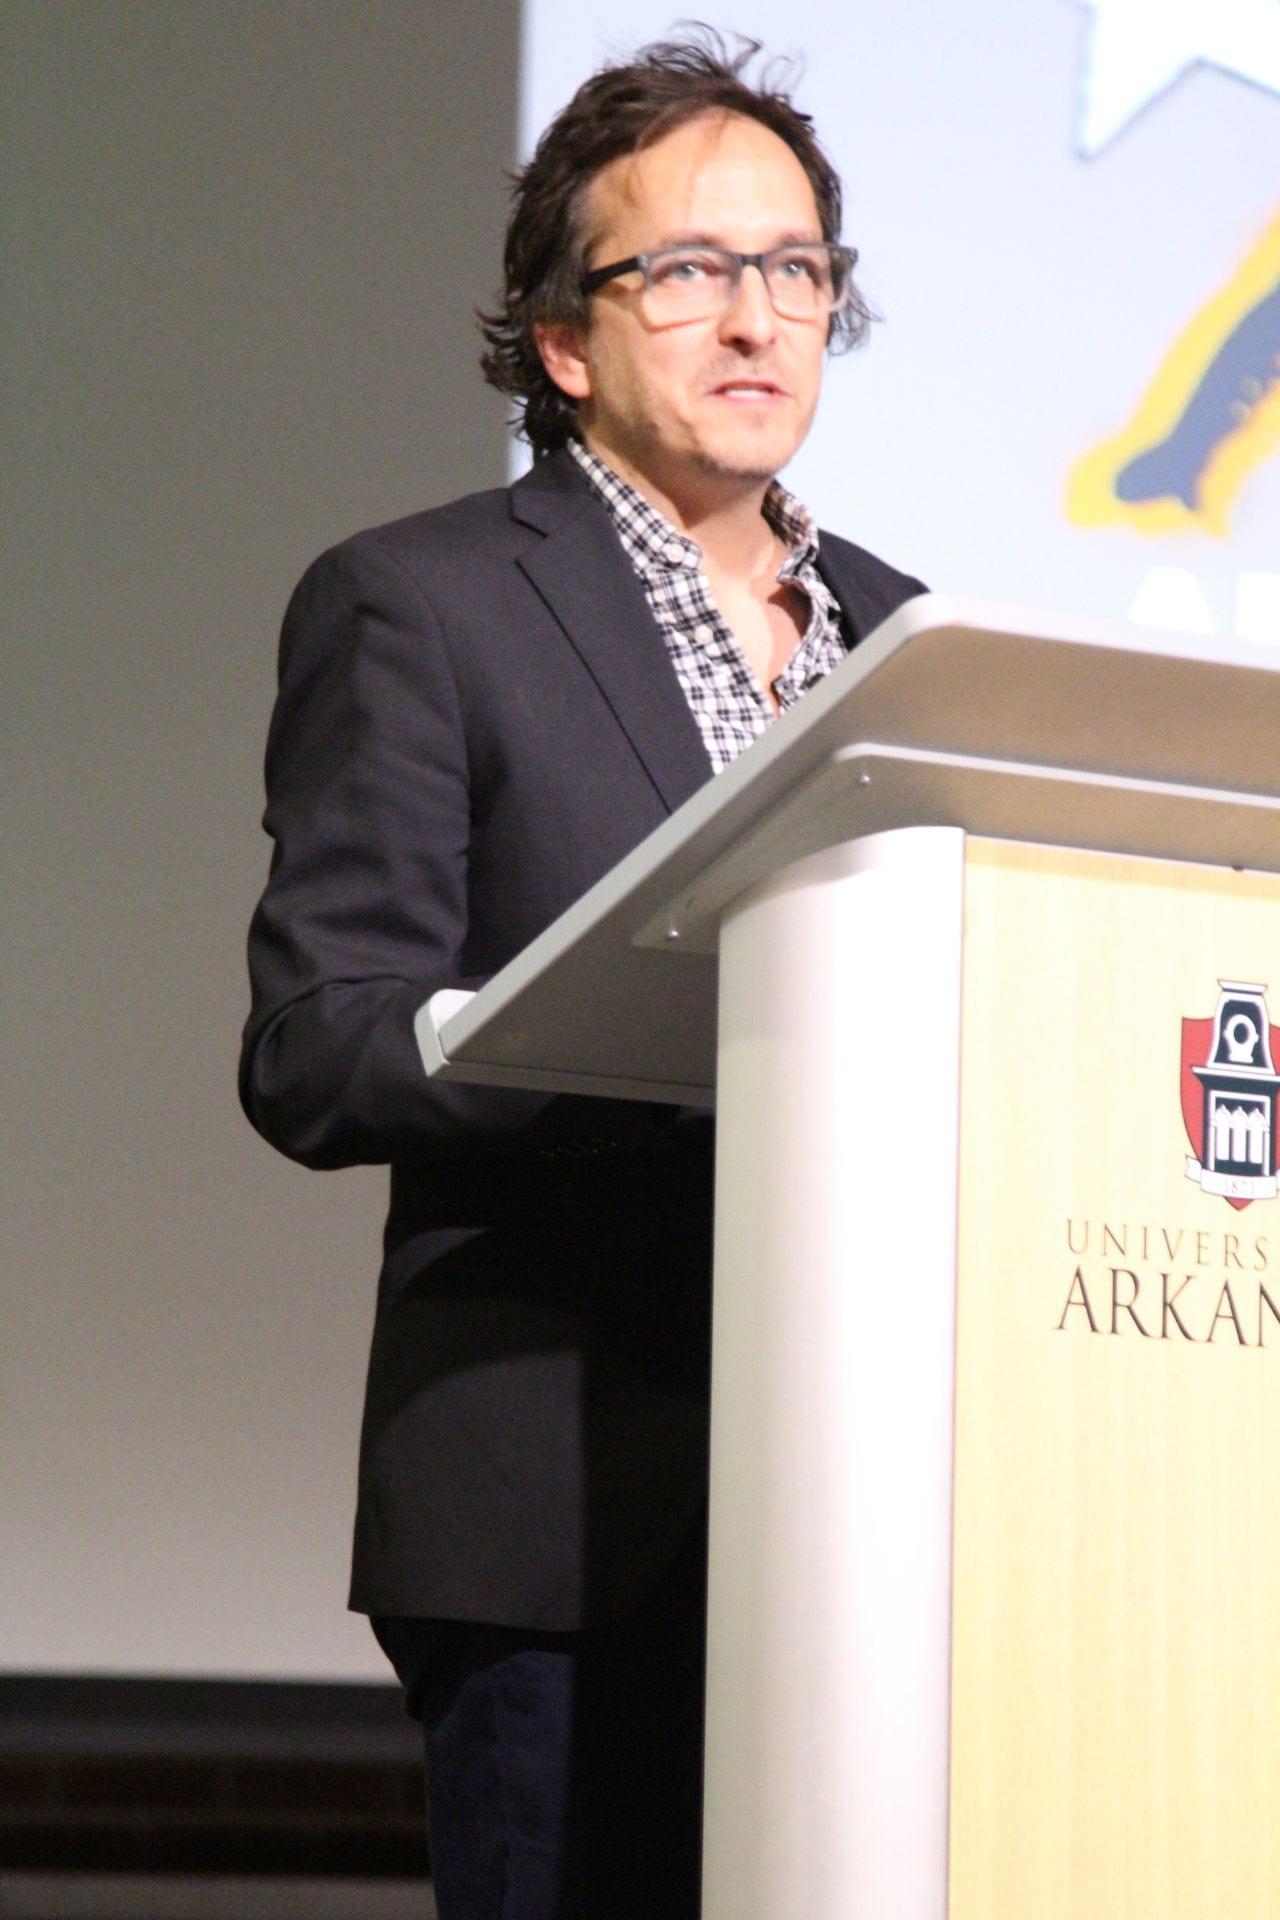 Renaud presented at the David and Barbara Pryor Center downtown Fayetteville, Nov. 20.